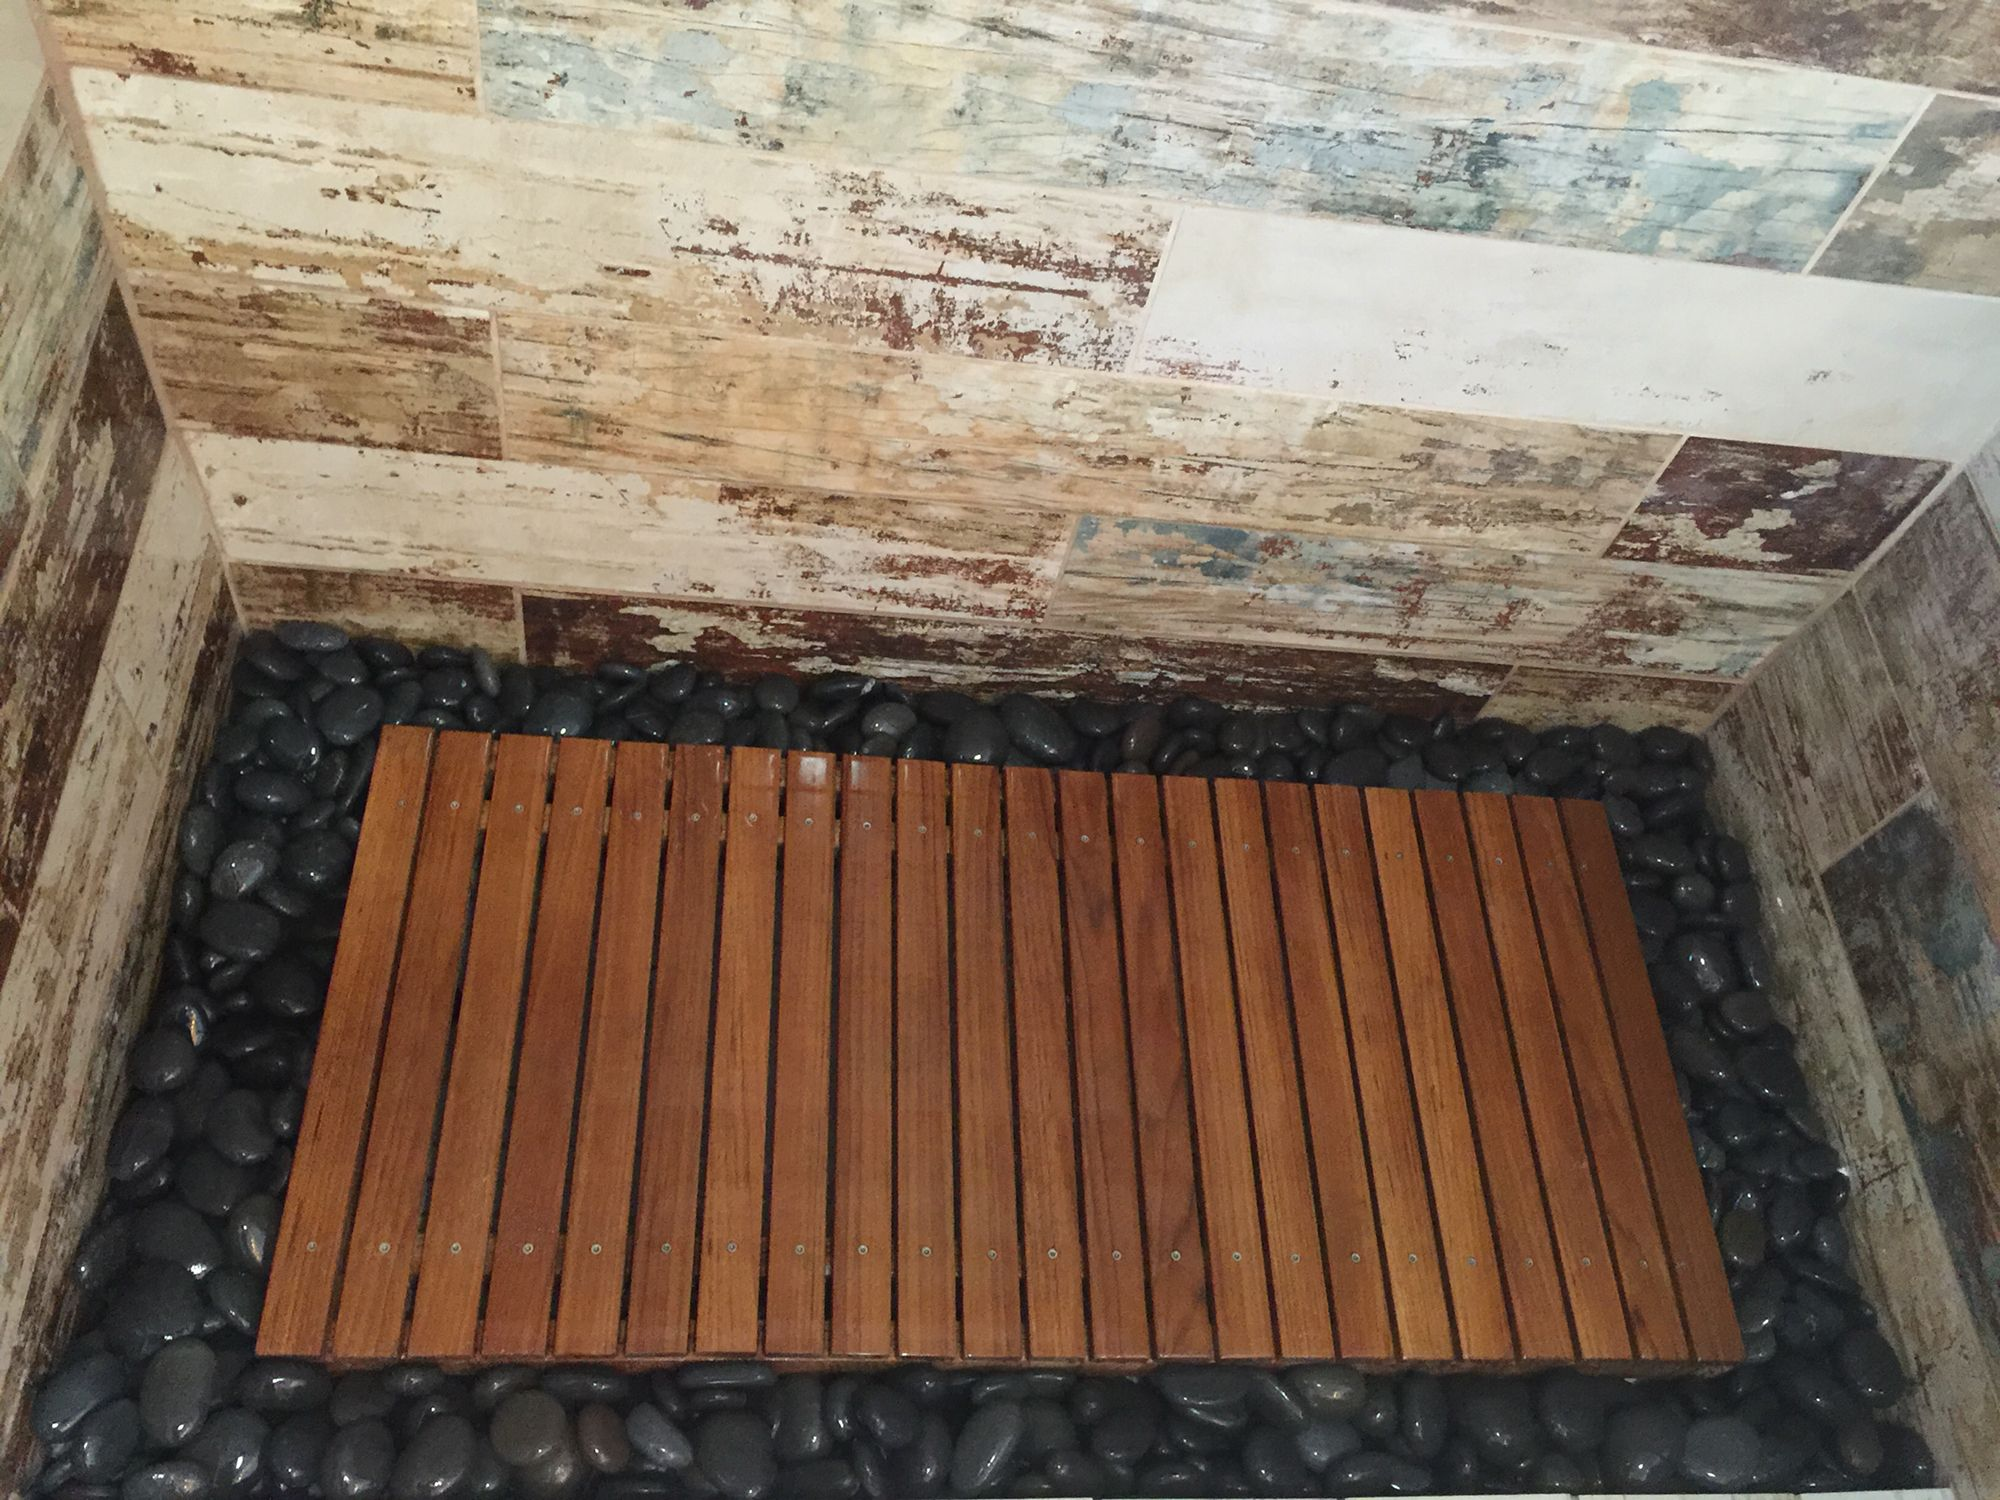 Teak wood shower floor surrounded by river rock walls tiles in teak wood shower floor surrounded by river rock walls tiles in ceramic bar wood tile designed by krysten petersen of wtbh llc st dailygadgetfo Images